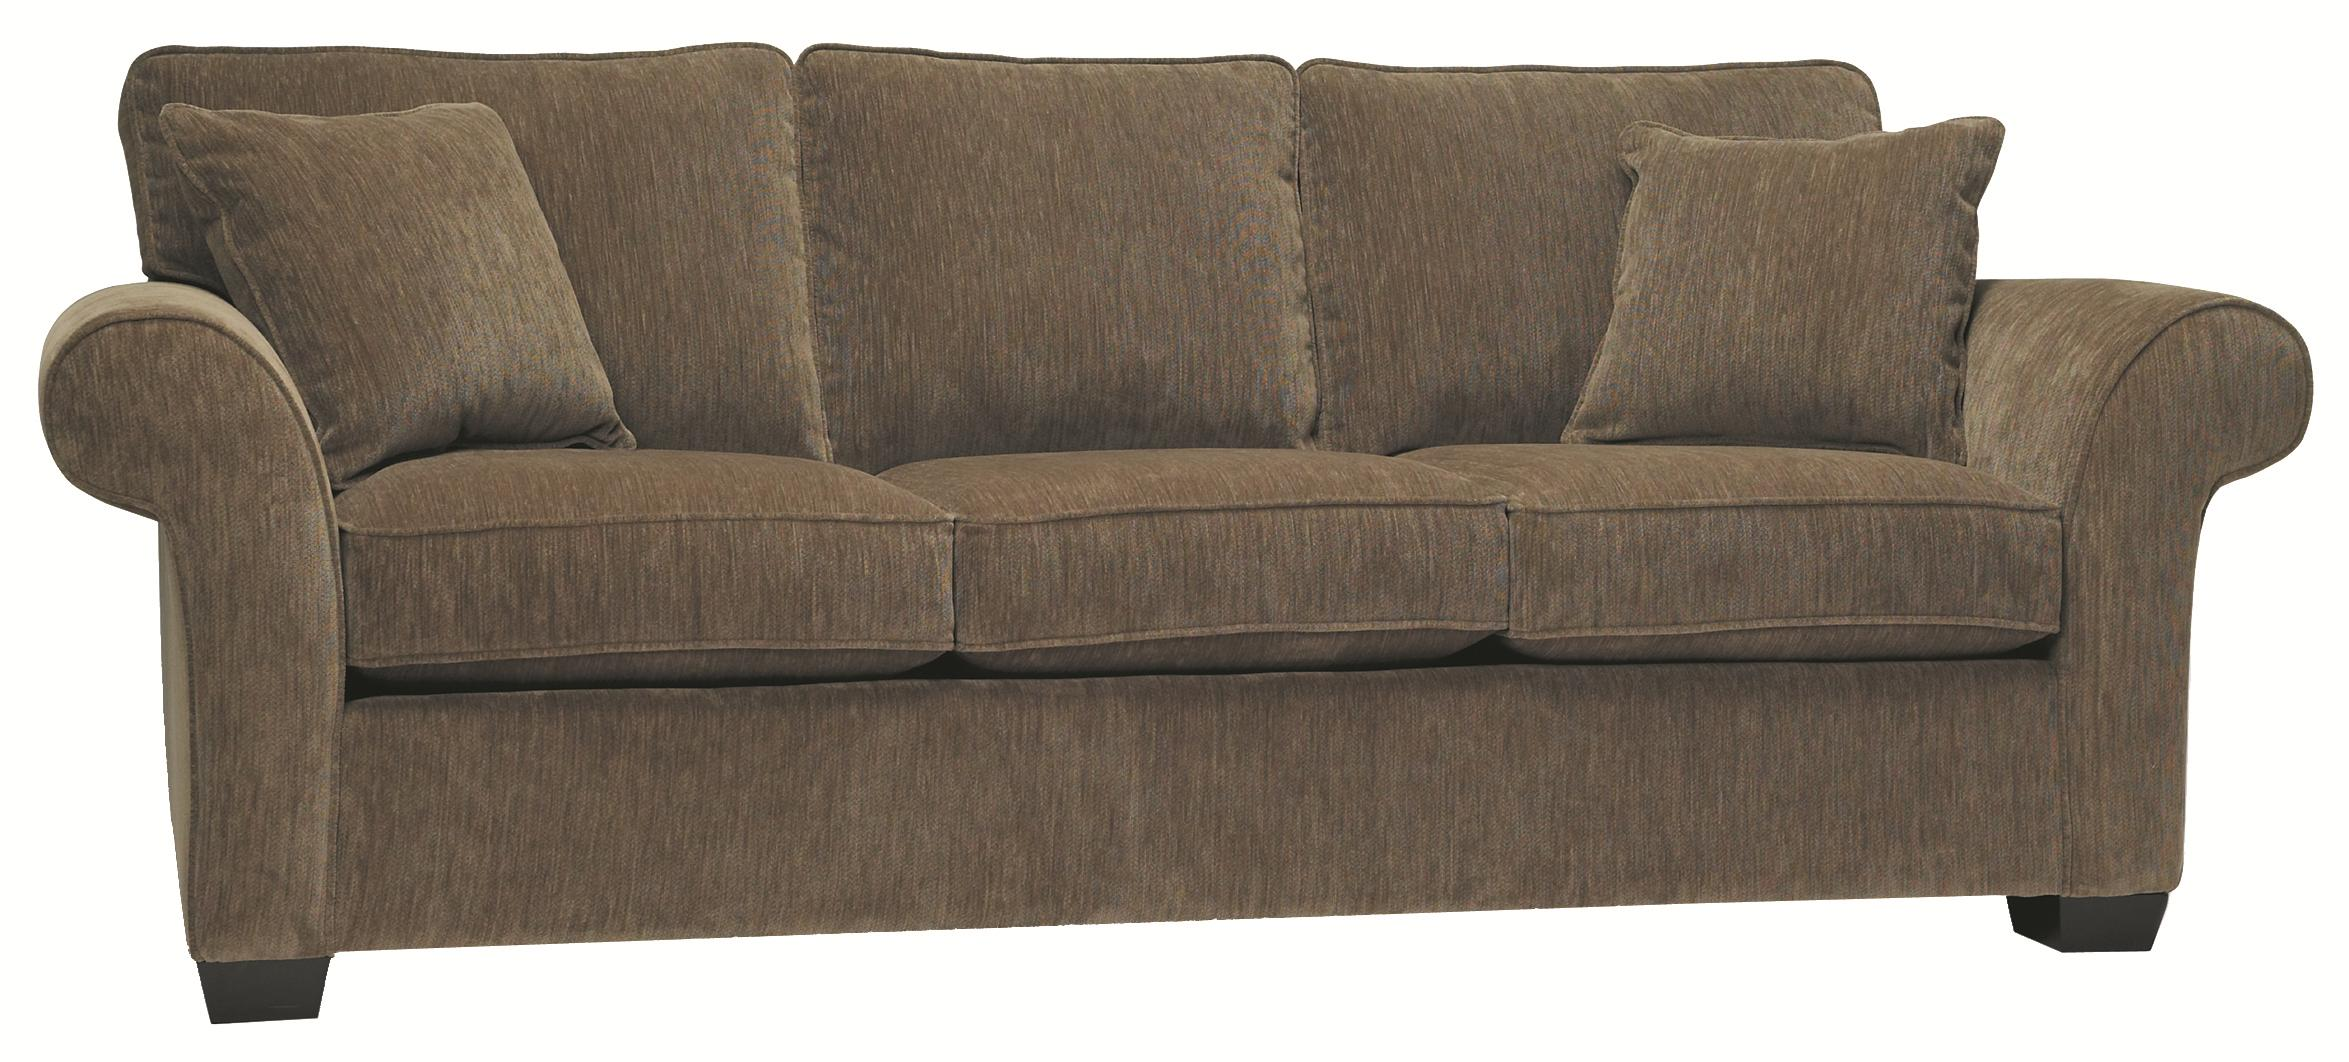 Stylus 7054 Stationary Traditional Sofa - Item Number: Soda